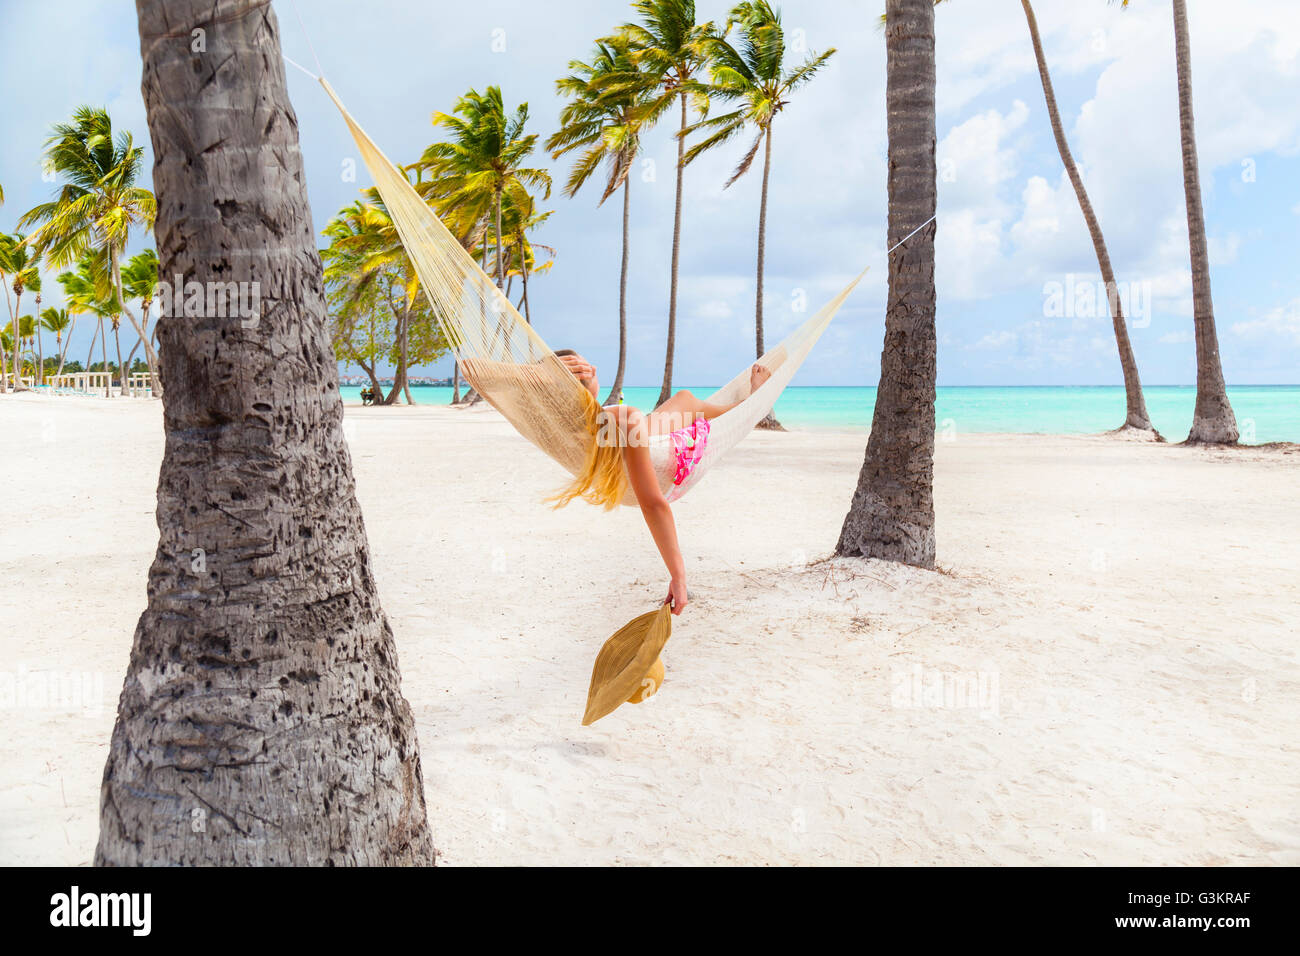 Young woman sunbathing in palm tree hammock at beach, Dominican Republic, The Caribbean Stock Photo